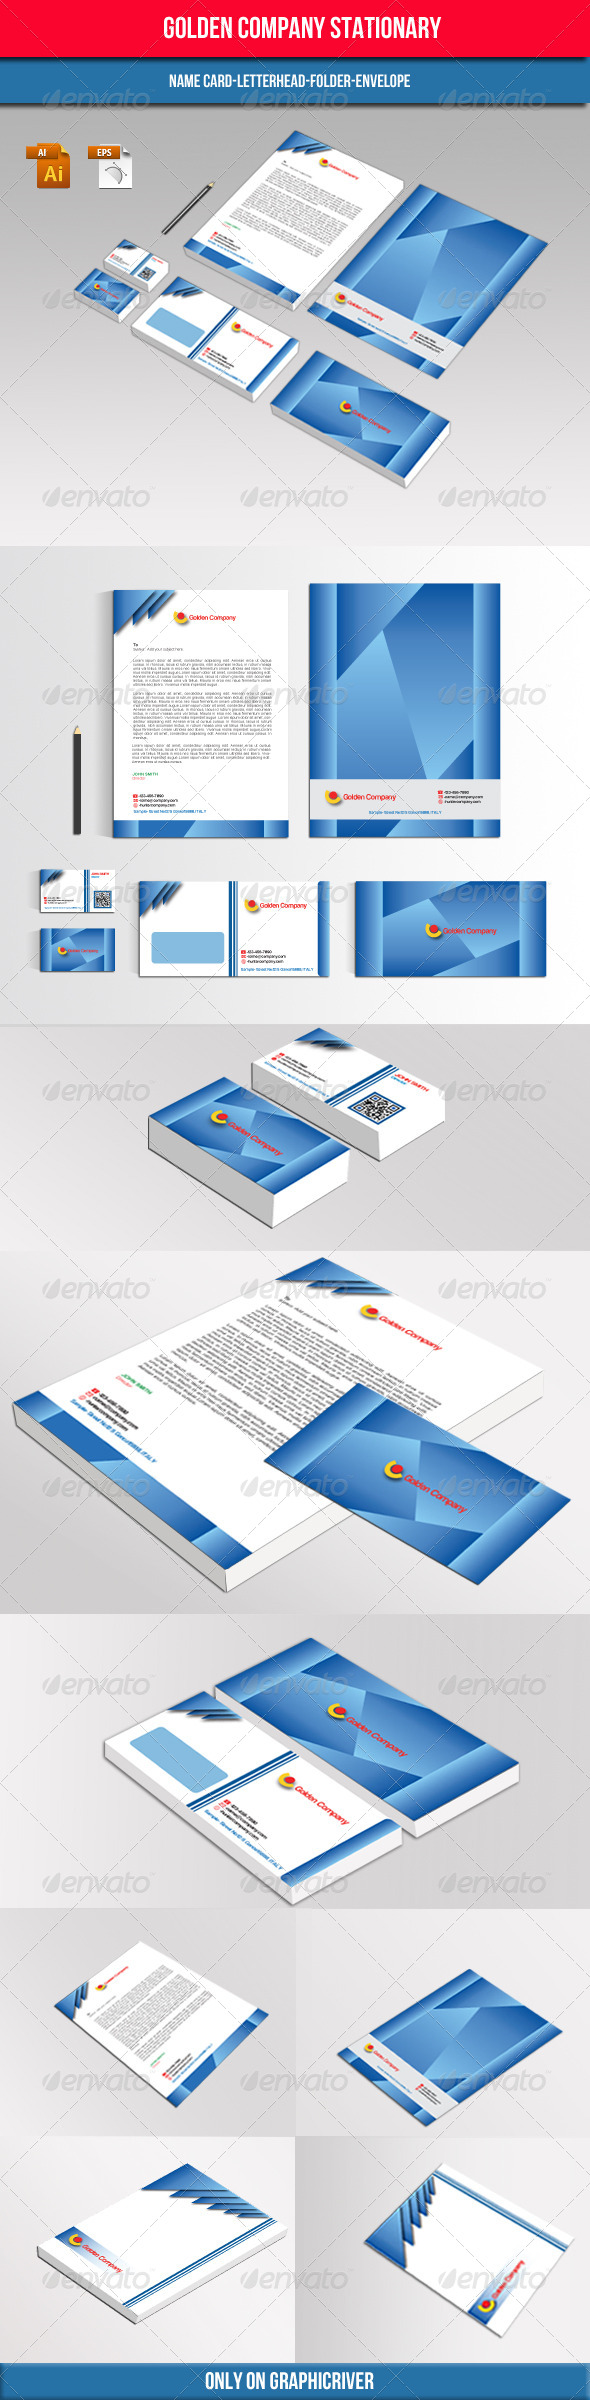 GraphicRiver Golden Company Stationary 4749039